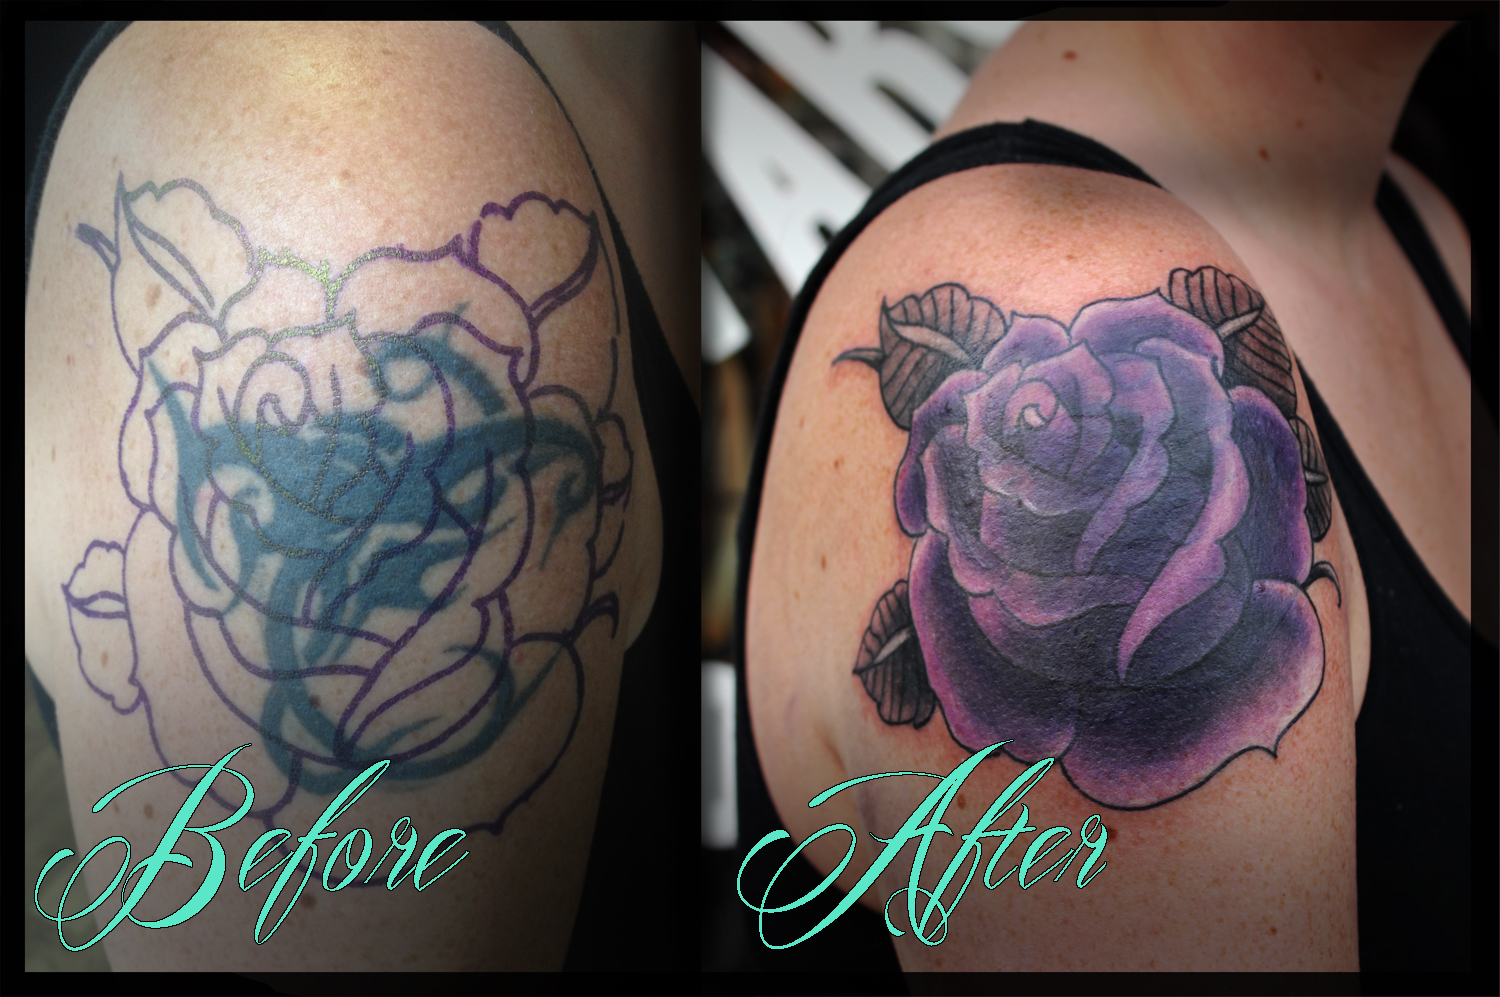 Tattoo cover up ideas forearm veins